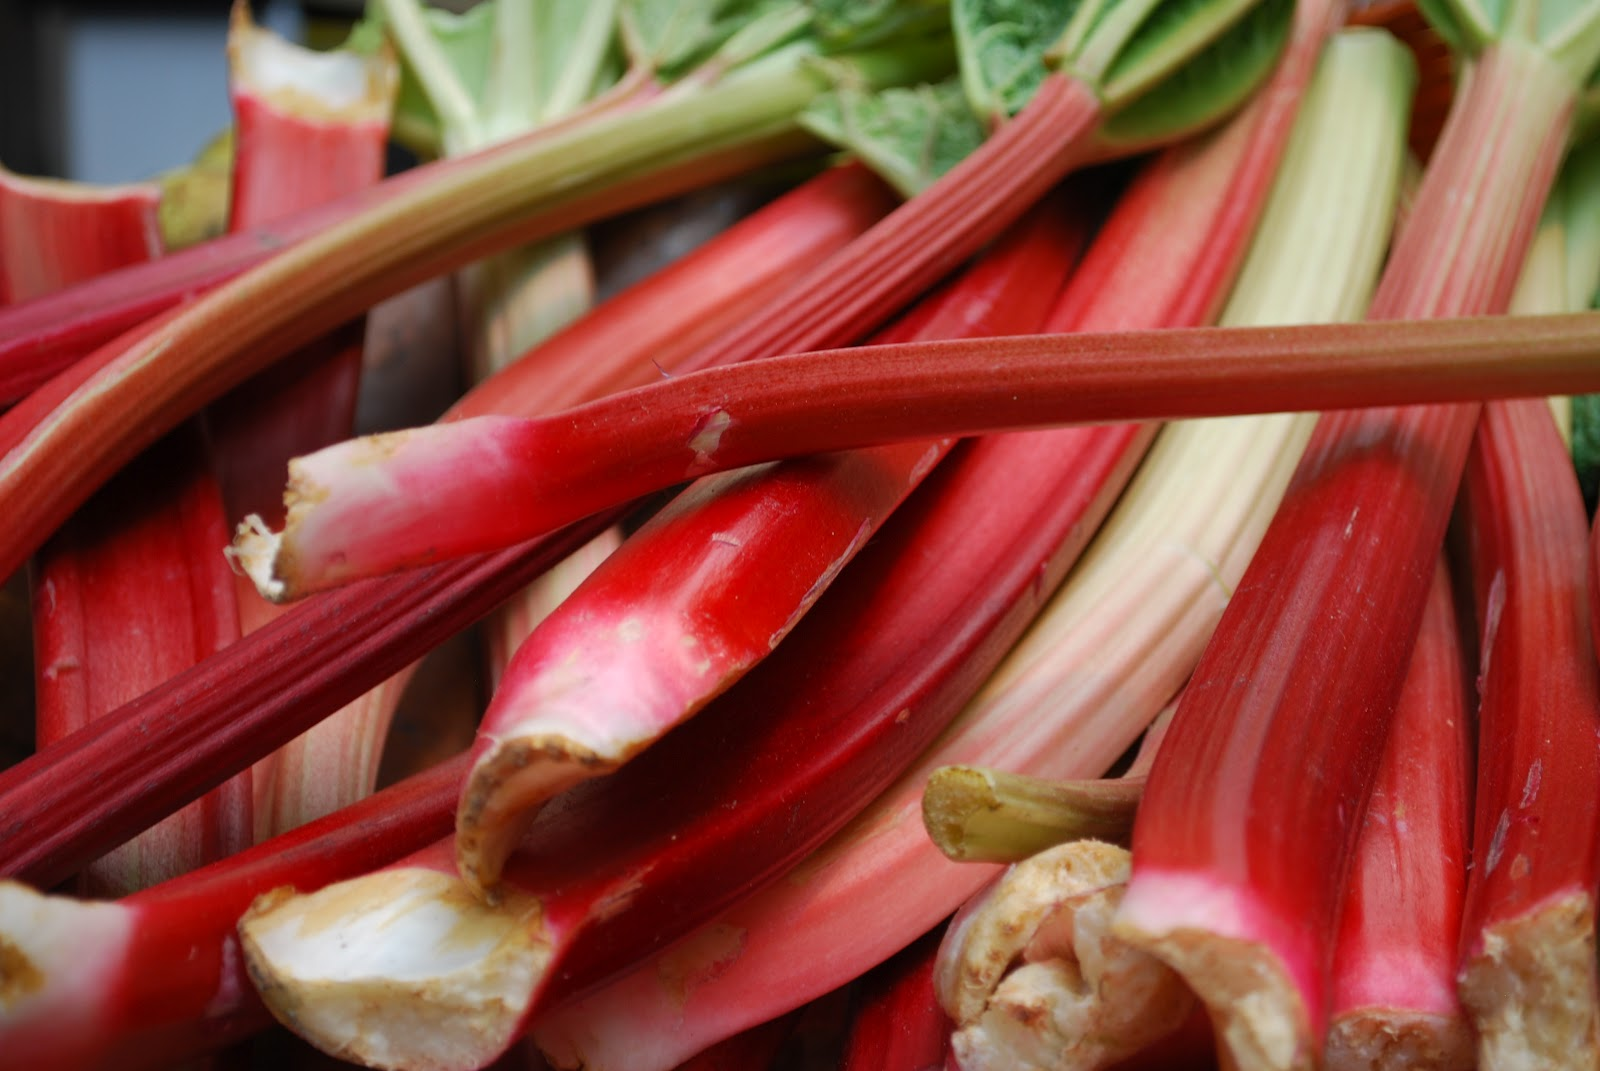 Eating Away At Arthritis Why Rhubarb Can Be A No No On The